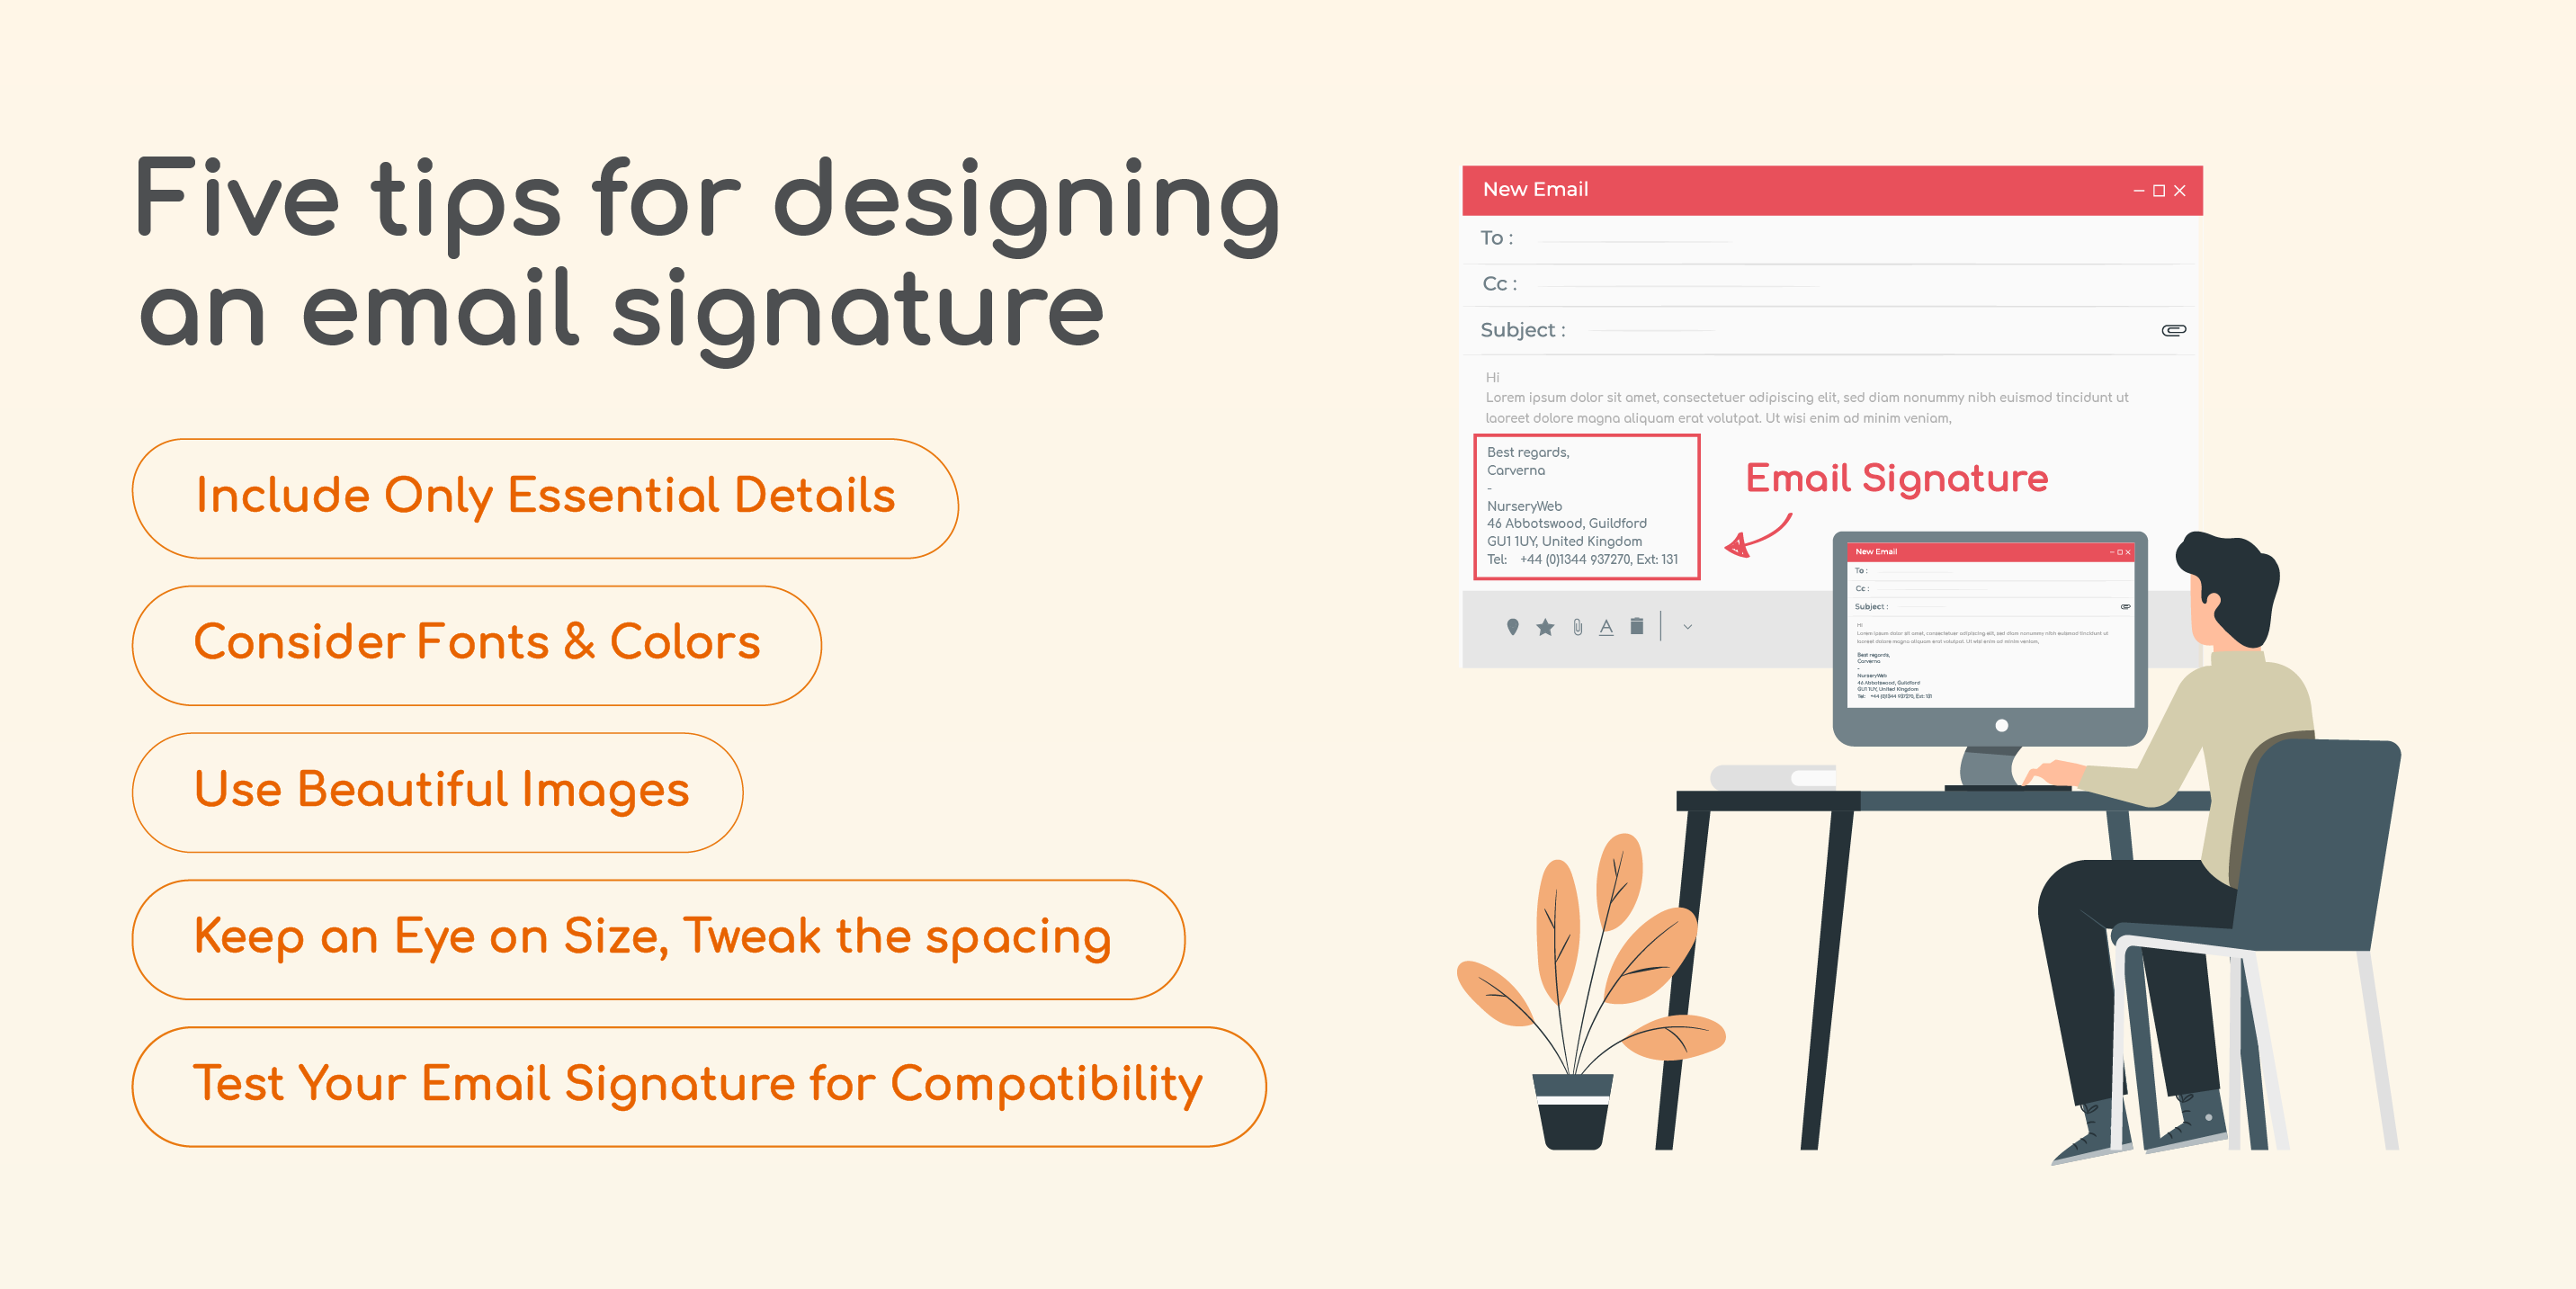 Five tips for designing an email signature